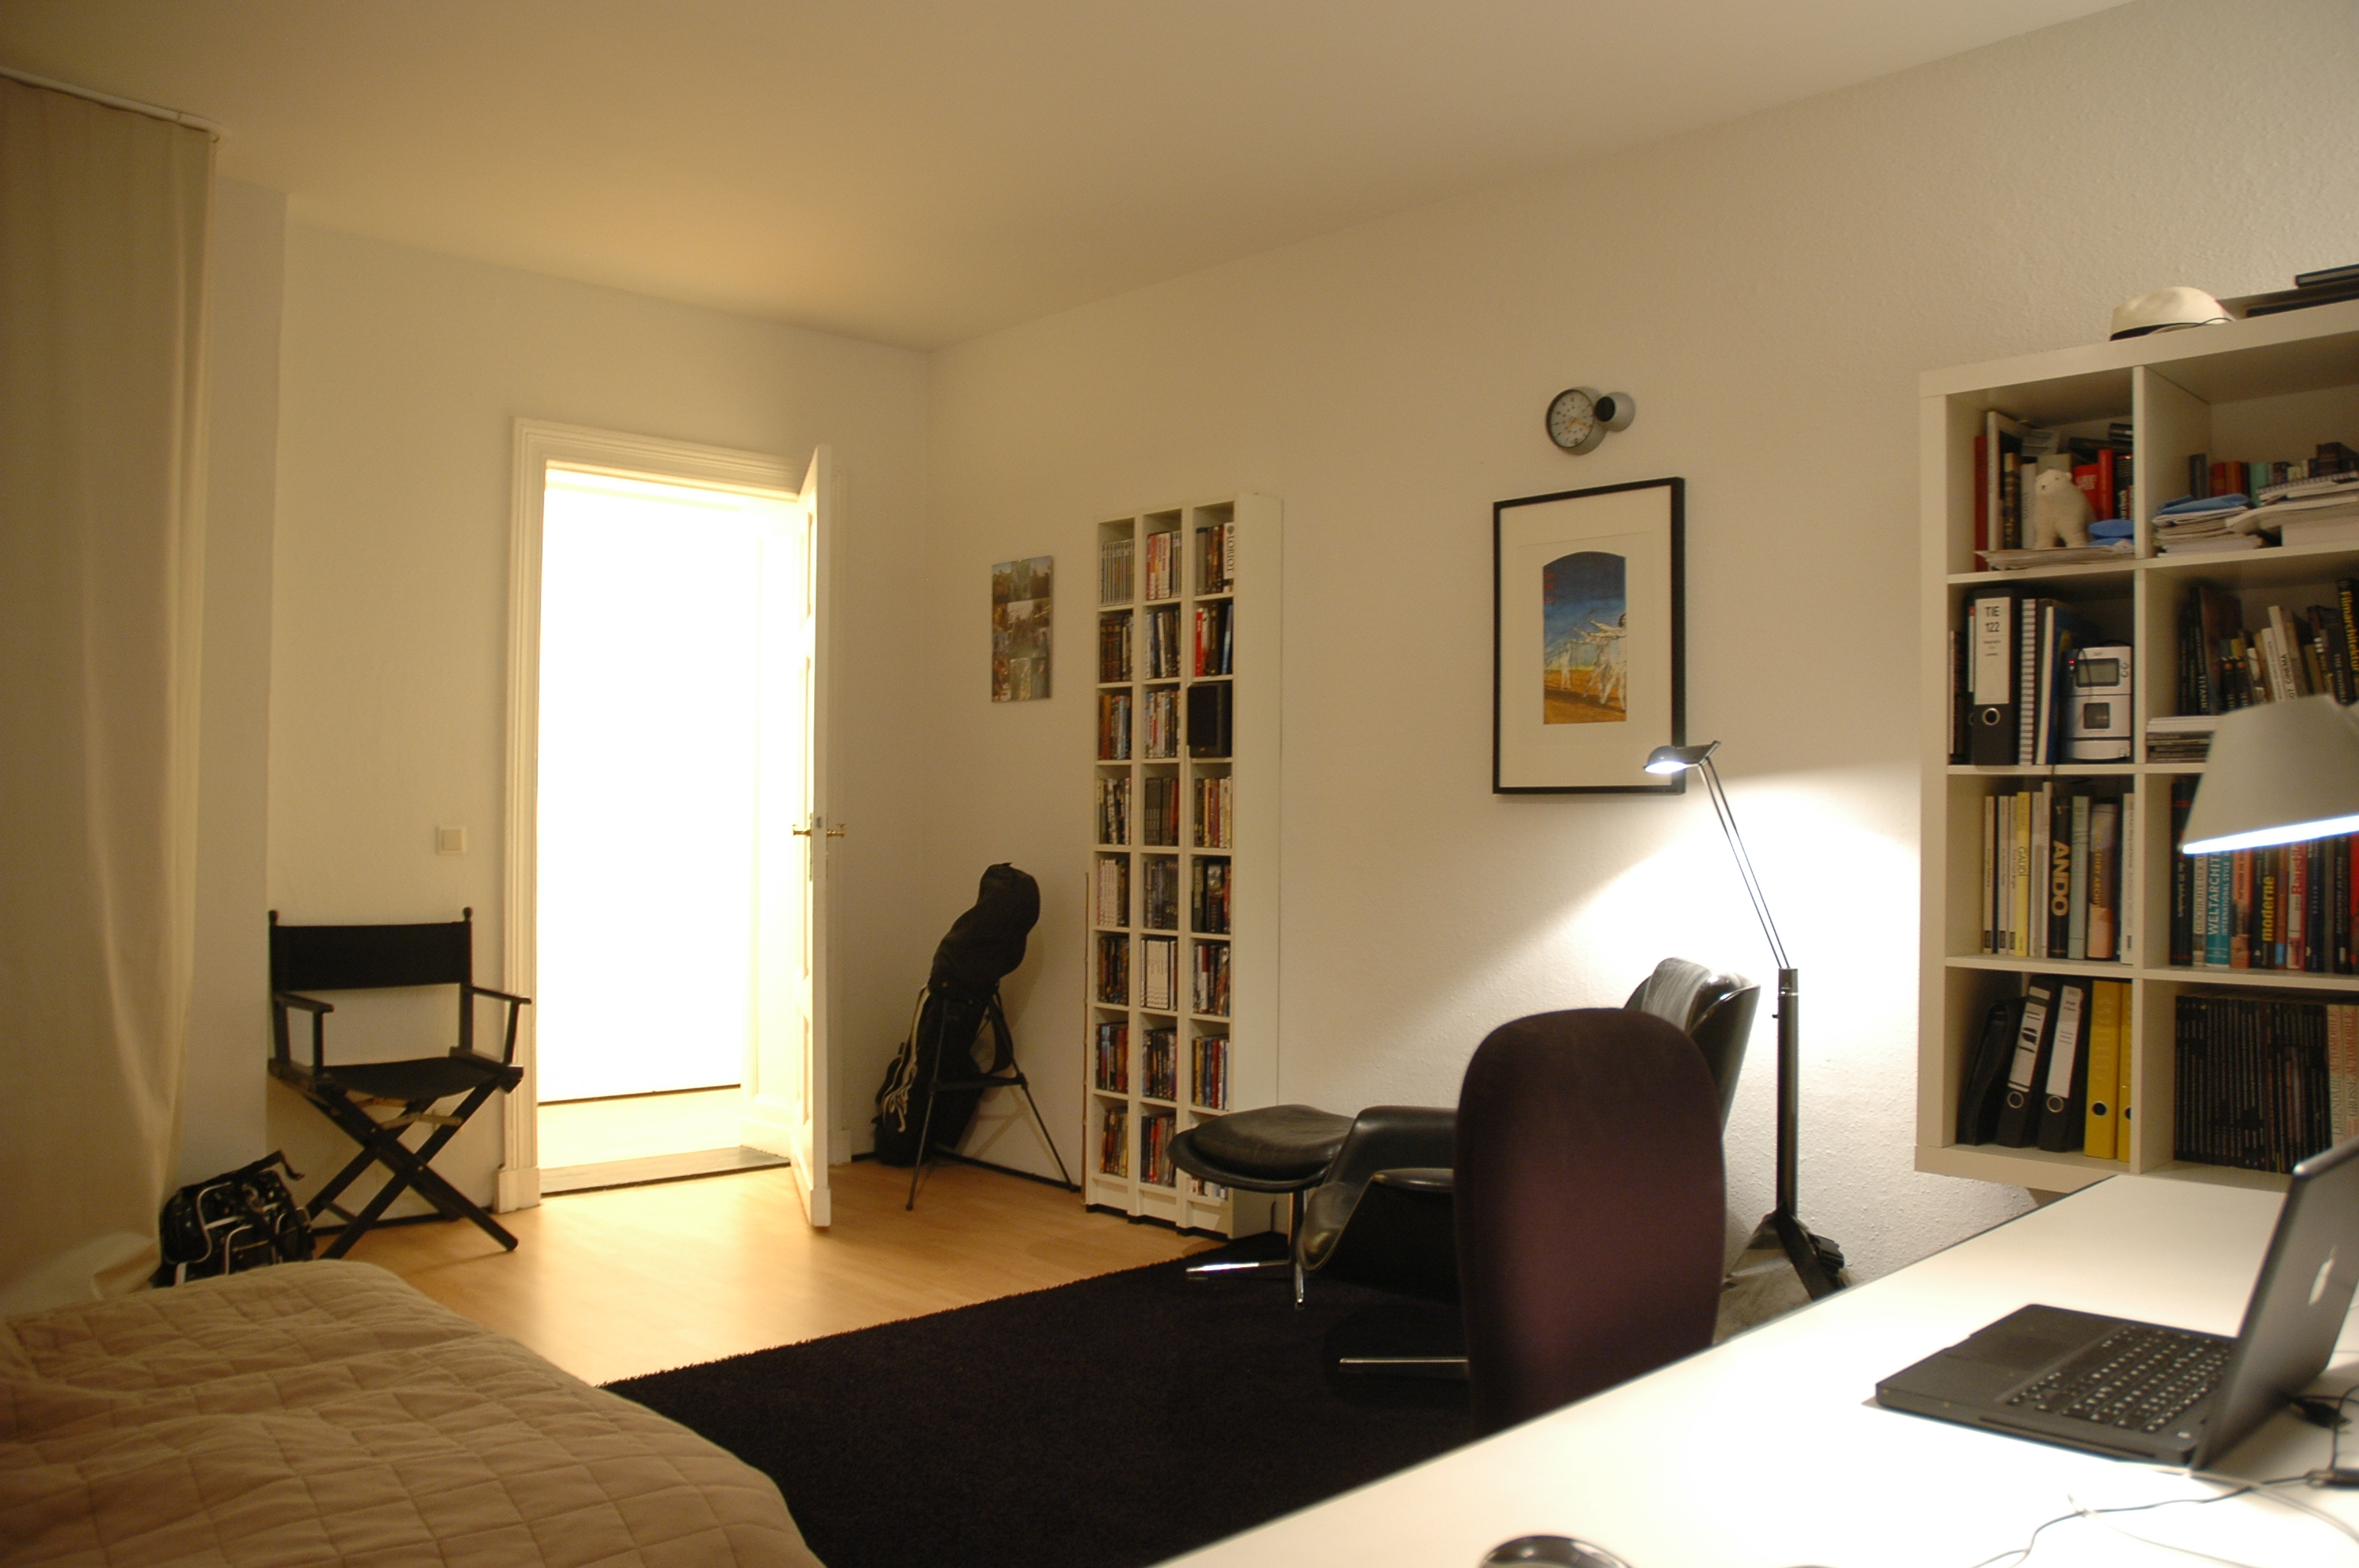 wg berlin charlottenburg neufertstrasse 7 studenten. Black Bedroom Furniture Sets. Home Design Ideas